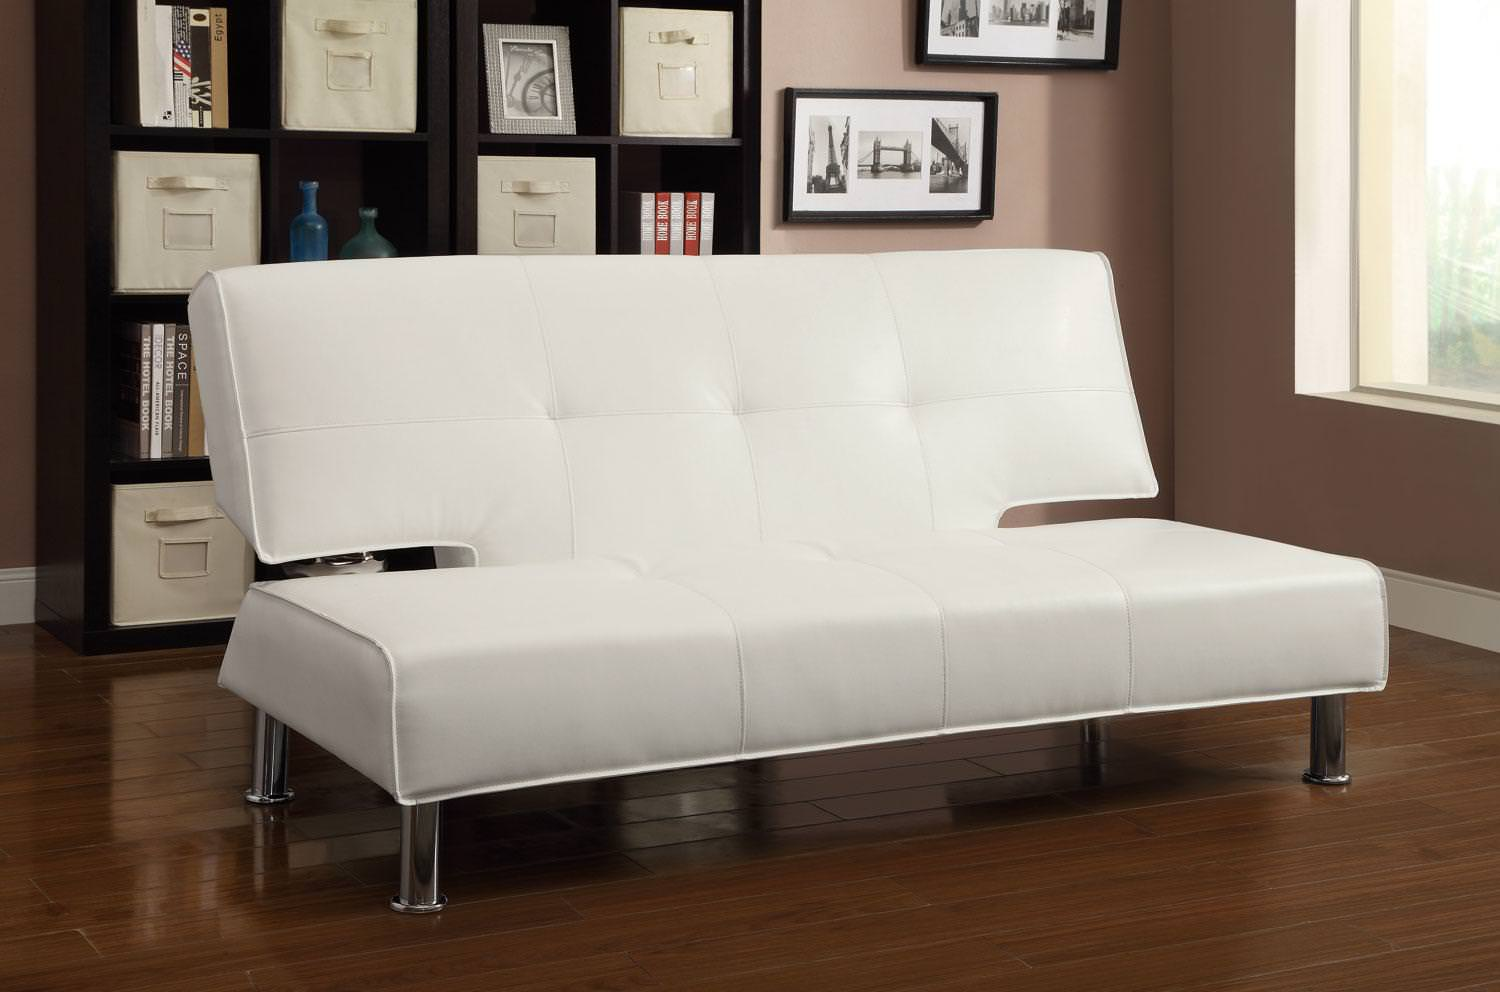 300296 sofa bed white by coaster for Sofa bed name